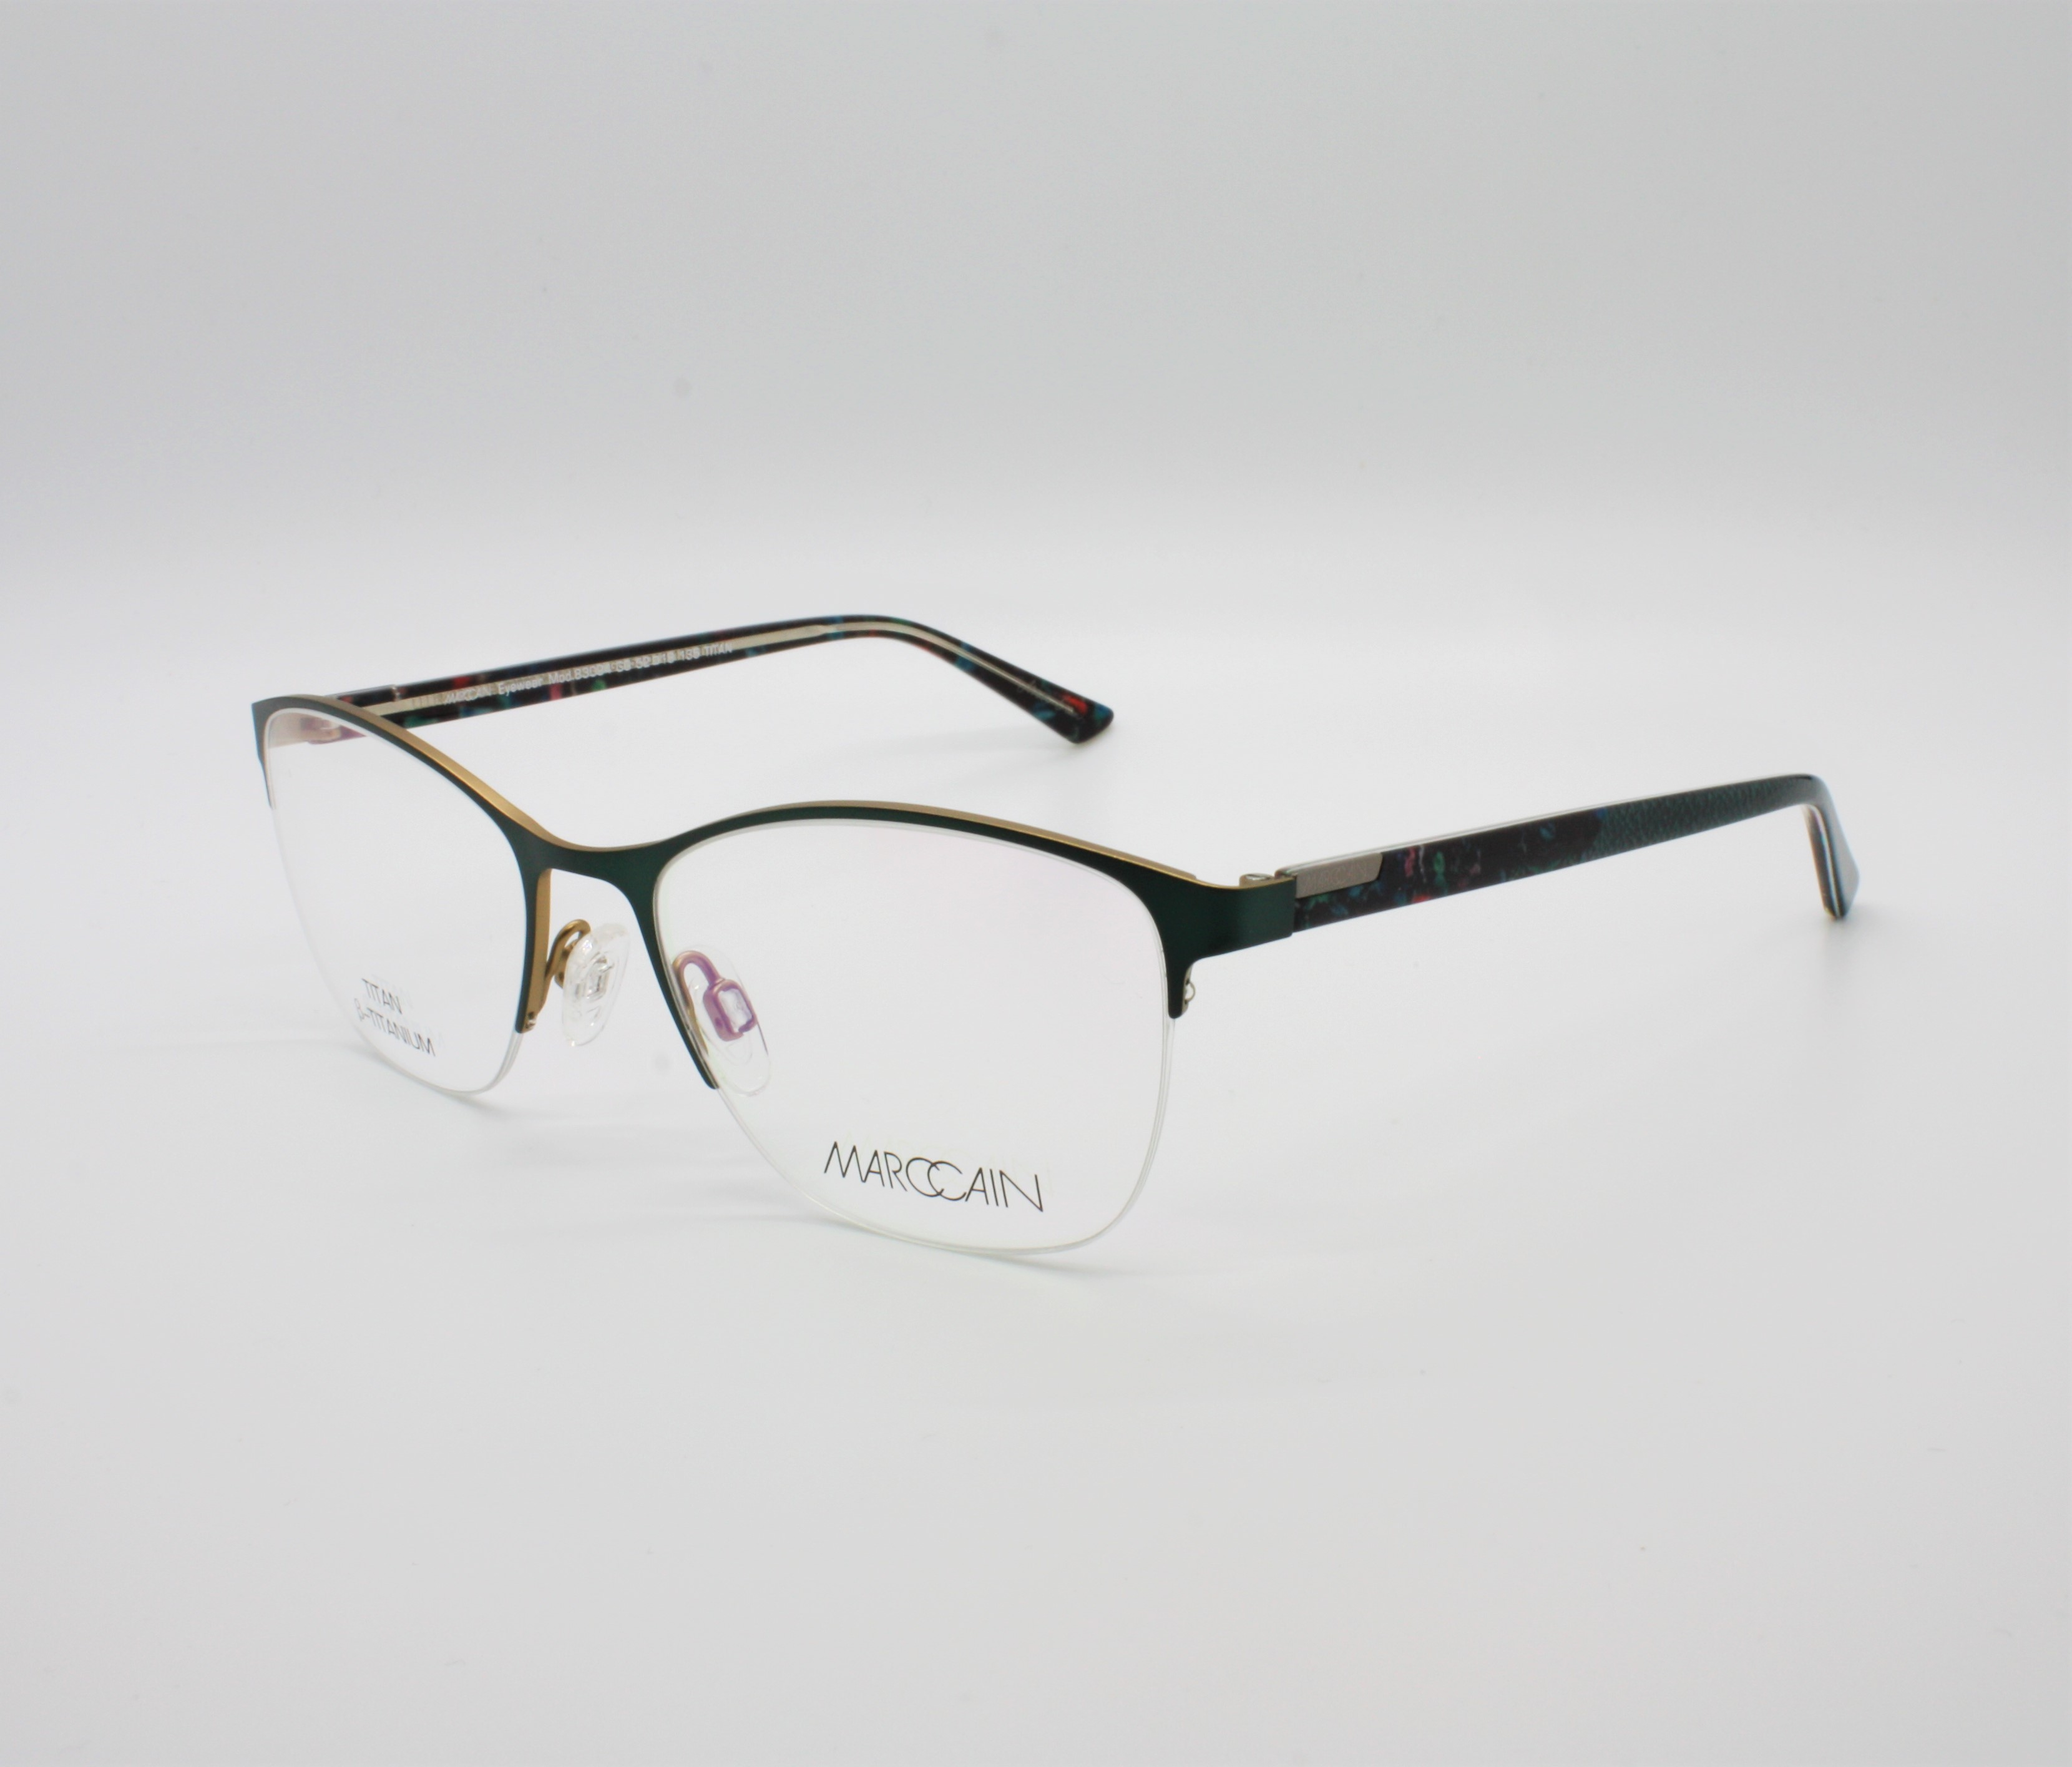 Marc Cain 83094 - Green (GG)